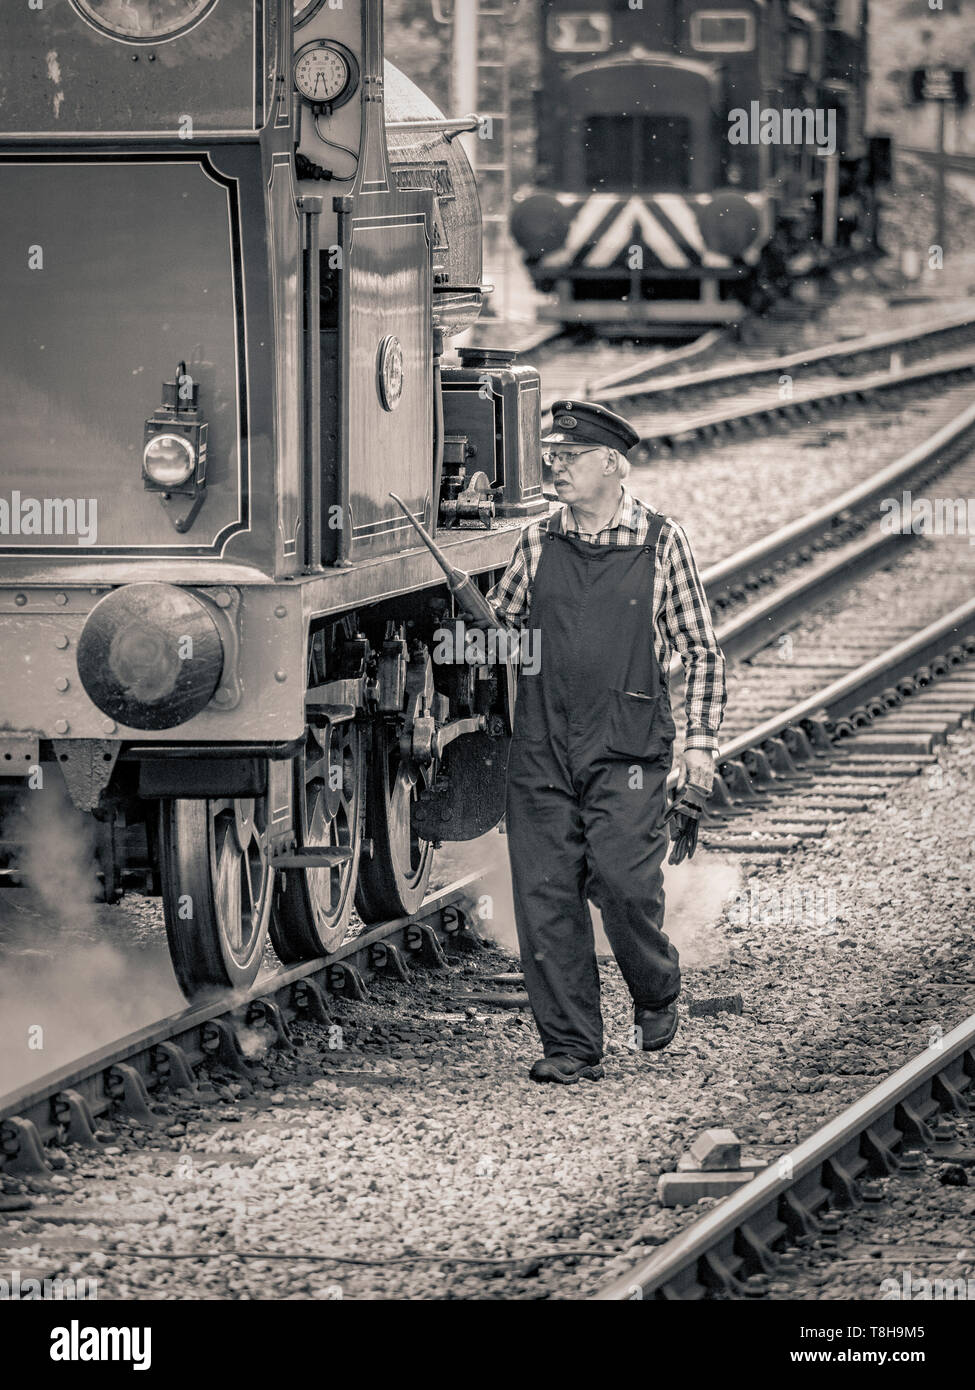 Mechanic working on Sir Robert Alpine and Sons, Engine No. 88. Embsay and Bolton steam railway. Bolton Station, Yorkshire Dales, UK. - Stock Image